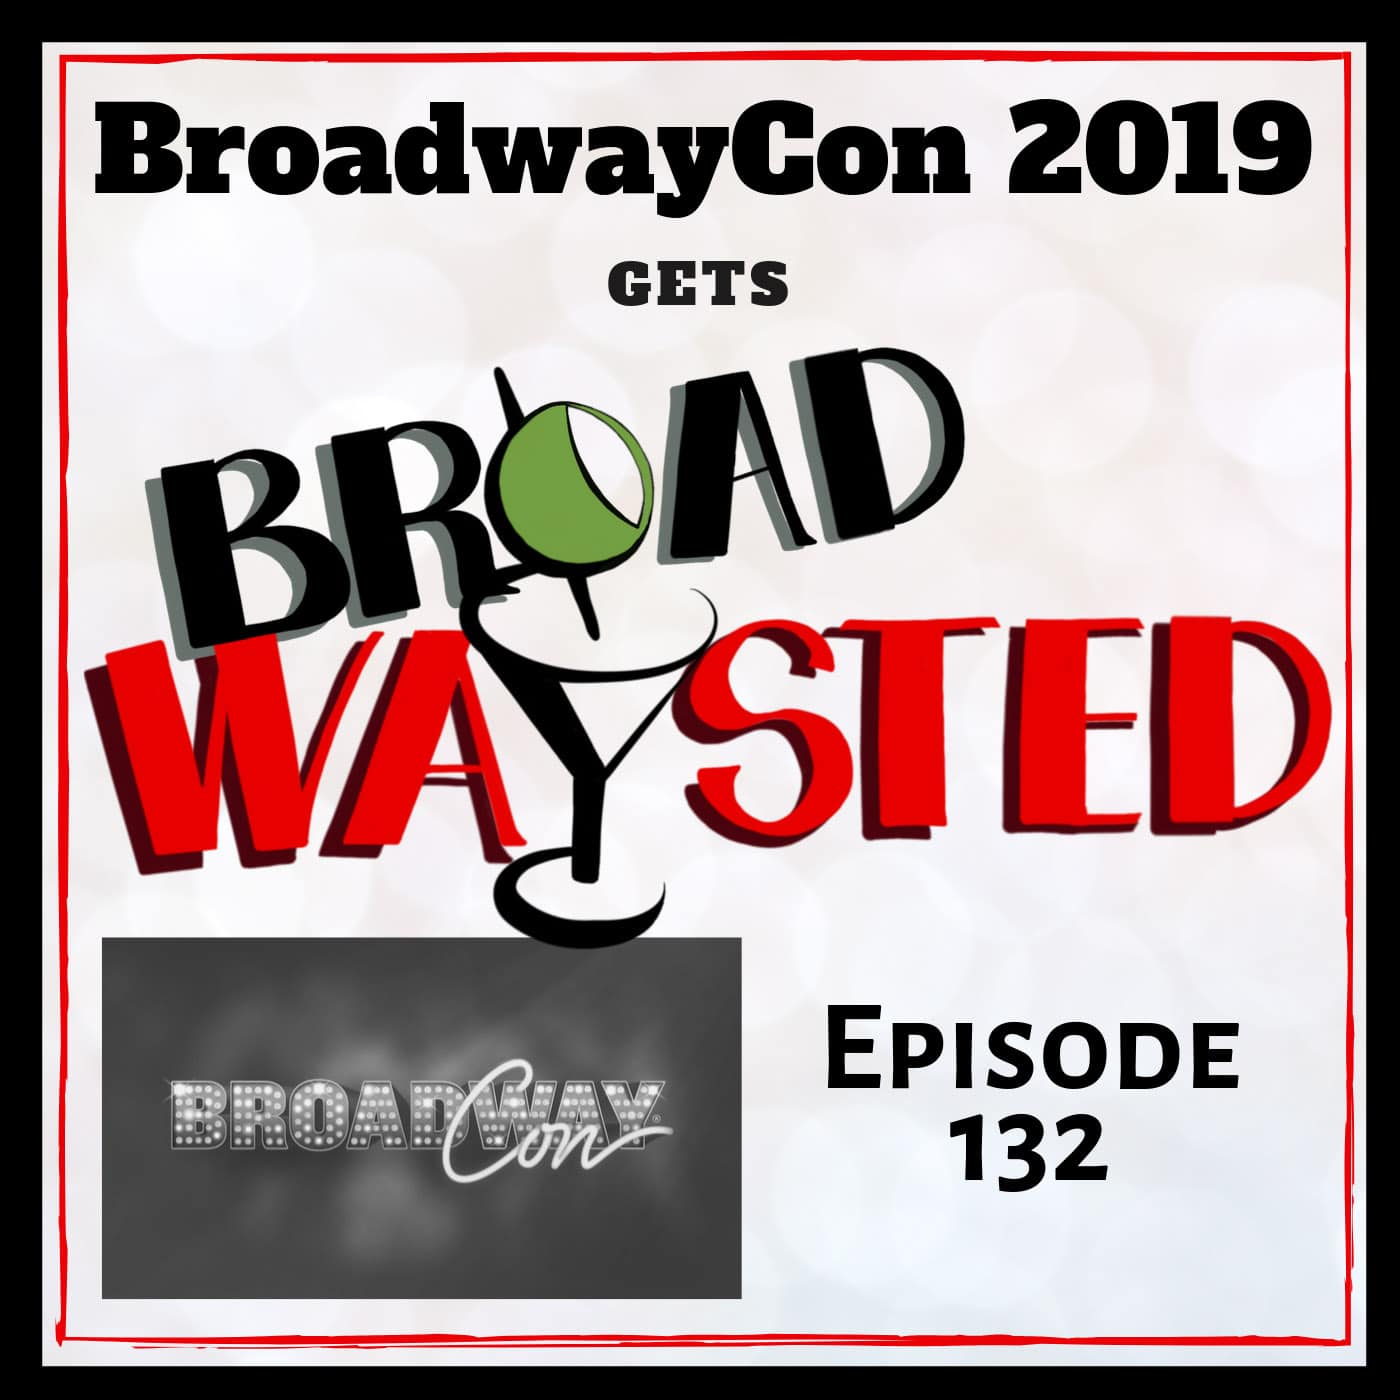 Broadwaysted Ep 132 BroadwayCon 2019